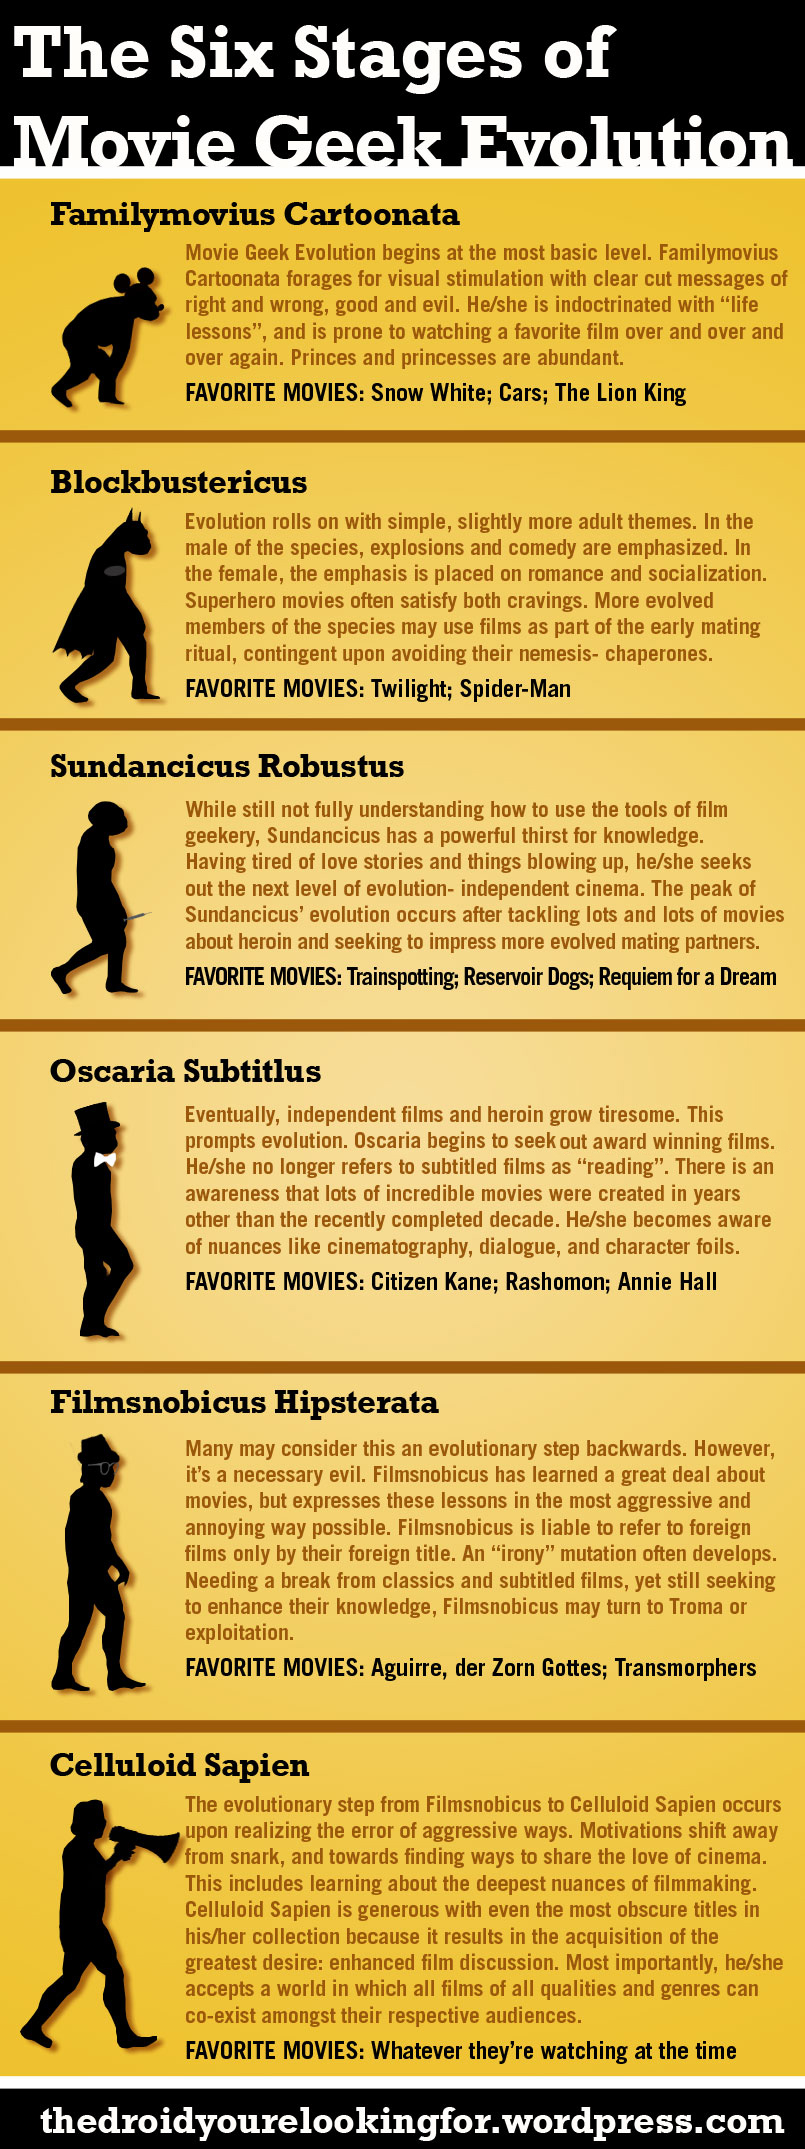 The Sex Stages of Movie Geek Evolution